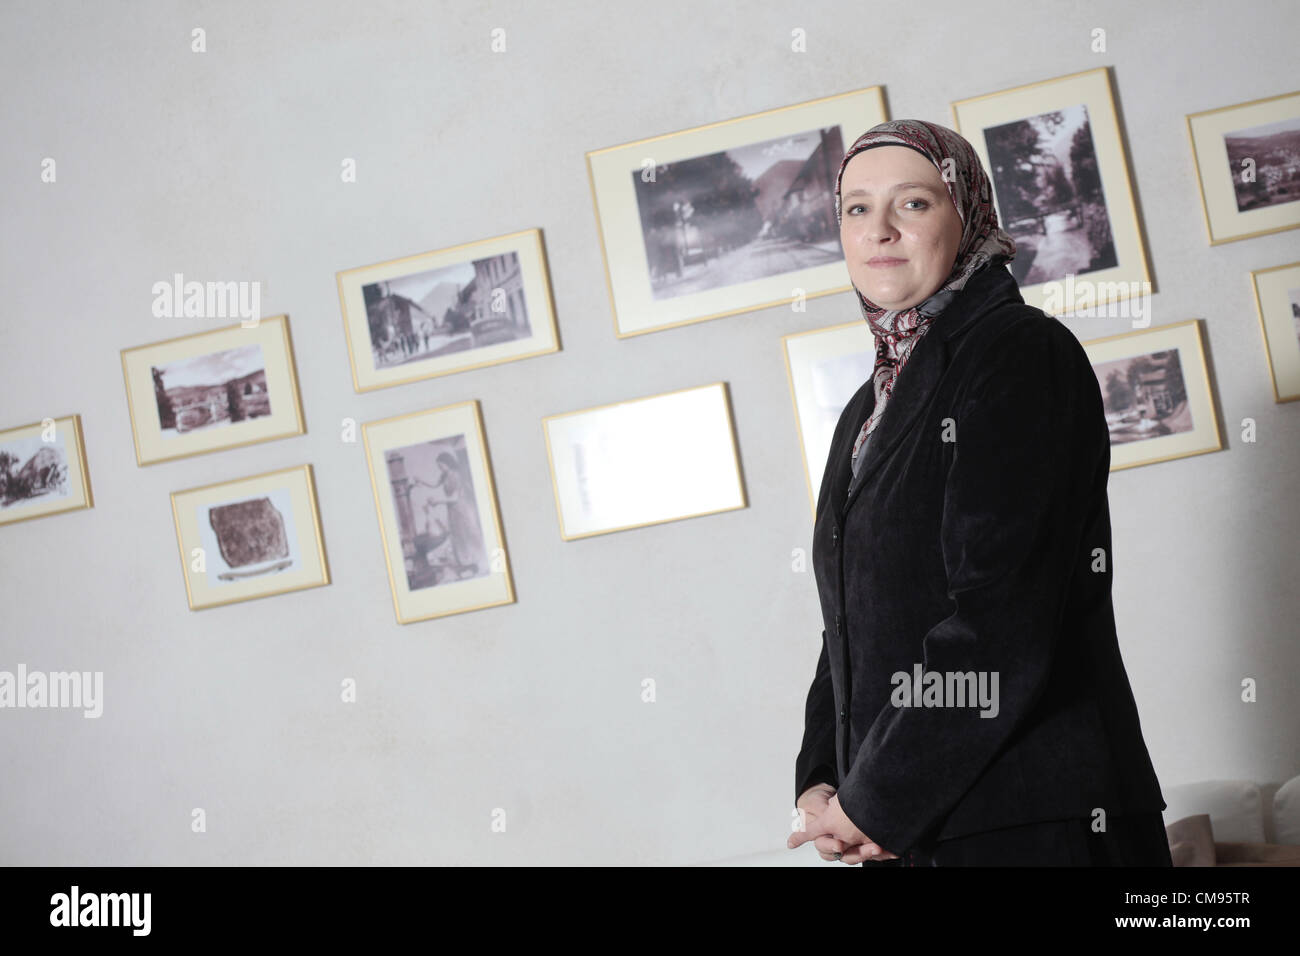 Visoko, Bosnia. 1st November 2012. Amra Babic, mayor of the Bosnian town of Visoko, 30 km north of Sarajevo, Bosnia. - Stock Image